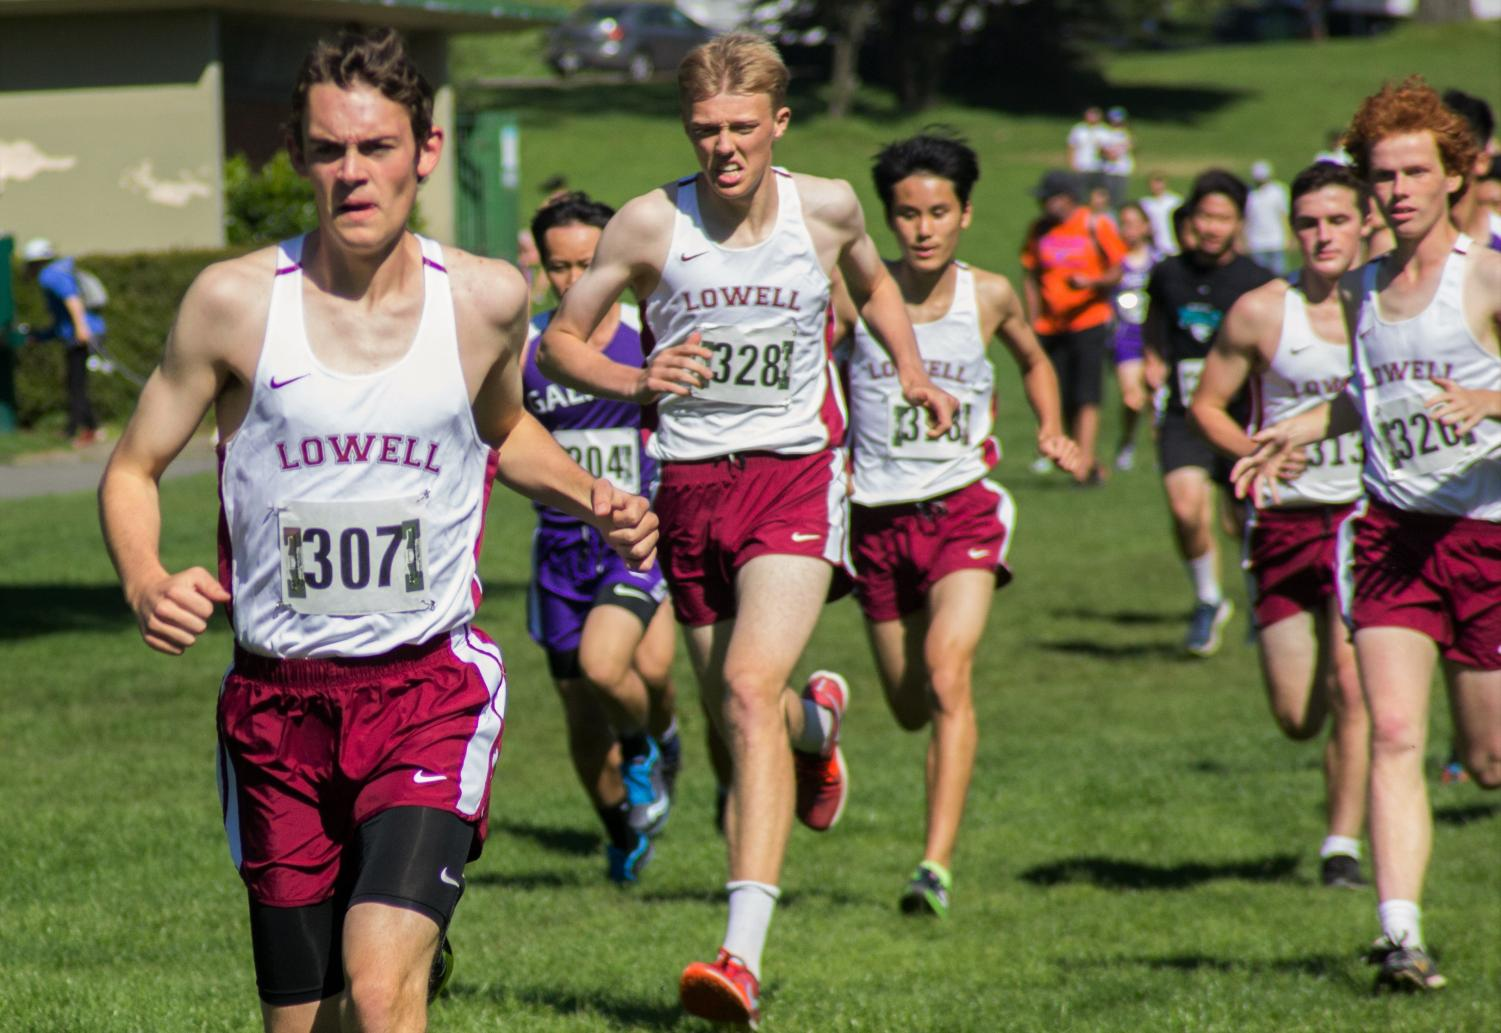 Senior Noah Battaglia leads the pack, with the rest of the boys varsity team following closely at Golden Gate Park on Sept. 20.